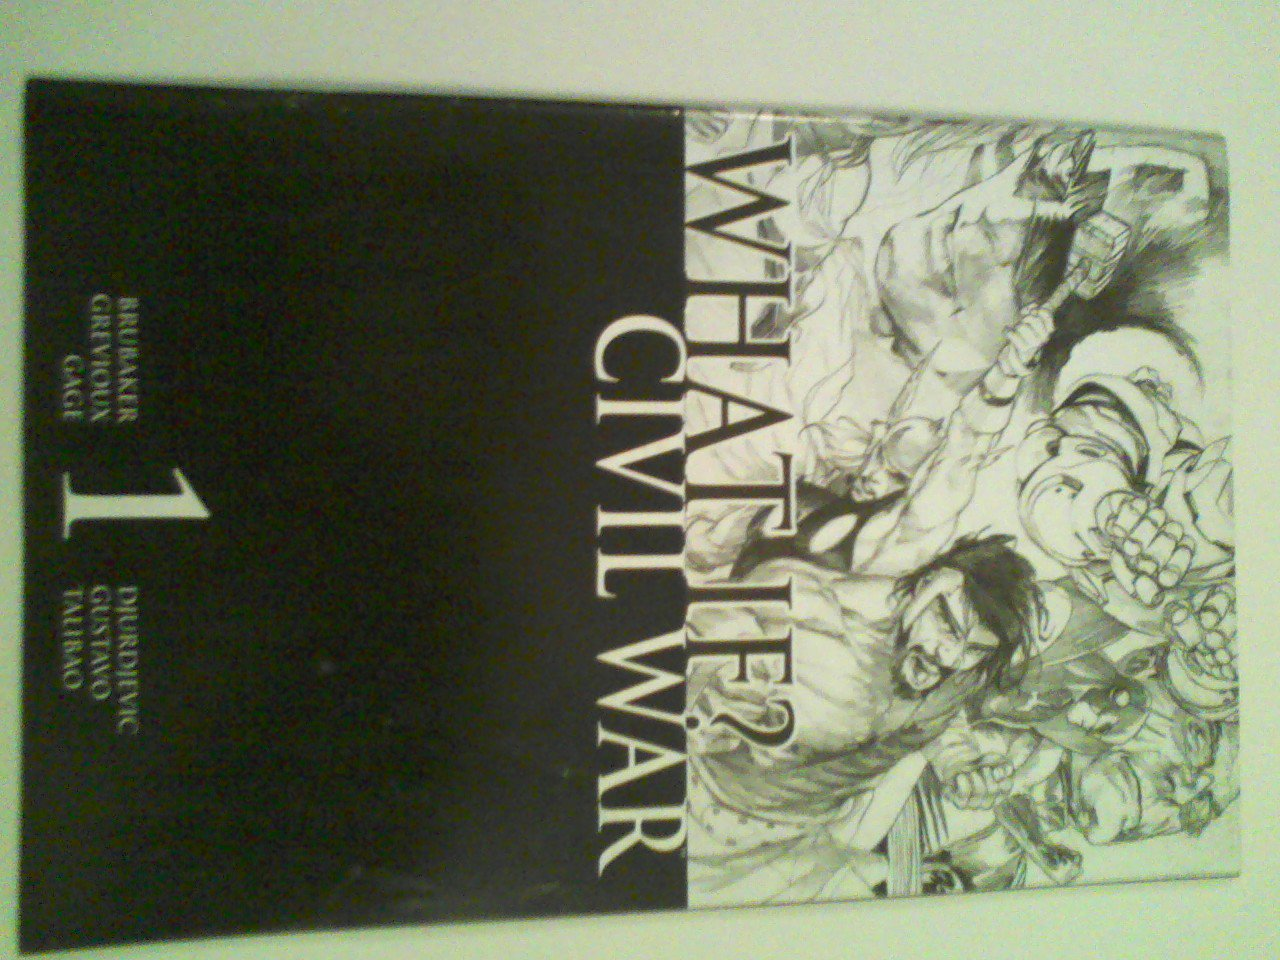 What If Civil War Wraparound Incentive Marko Djurdjevic Sketch House of M #1-4